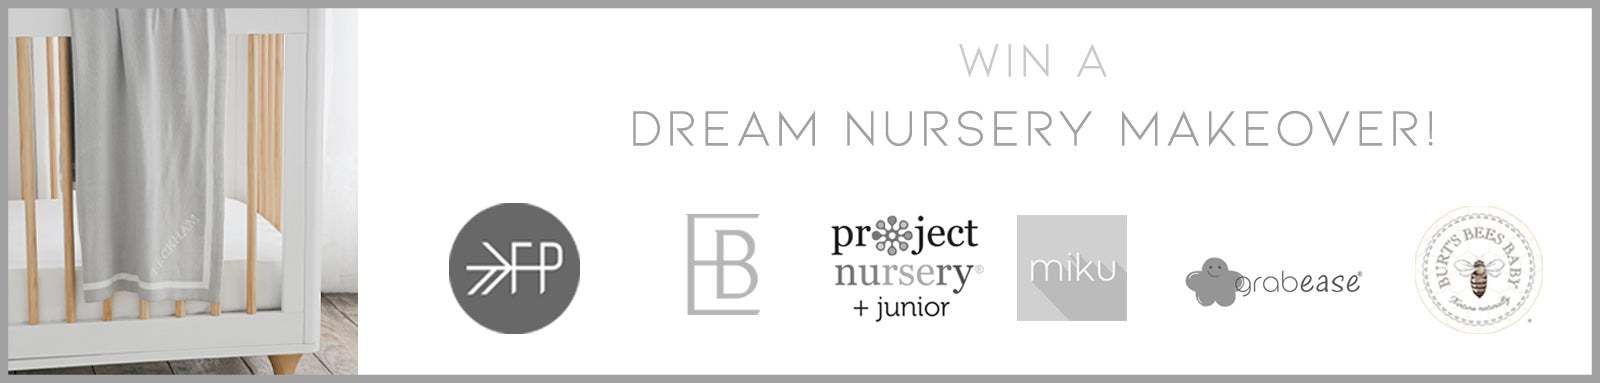 Dream Nursery Makeover Giveaway, Freshly Picked, Project Nursery, Baby gear